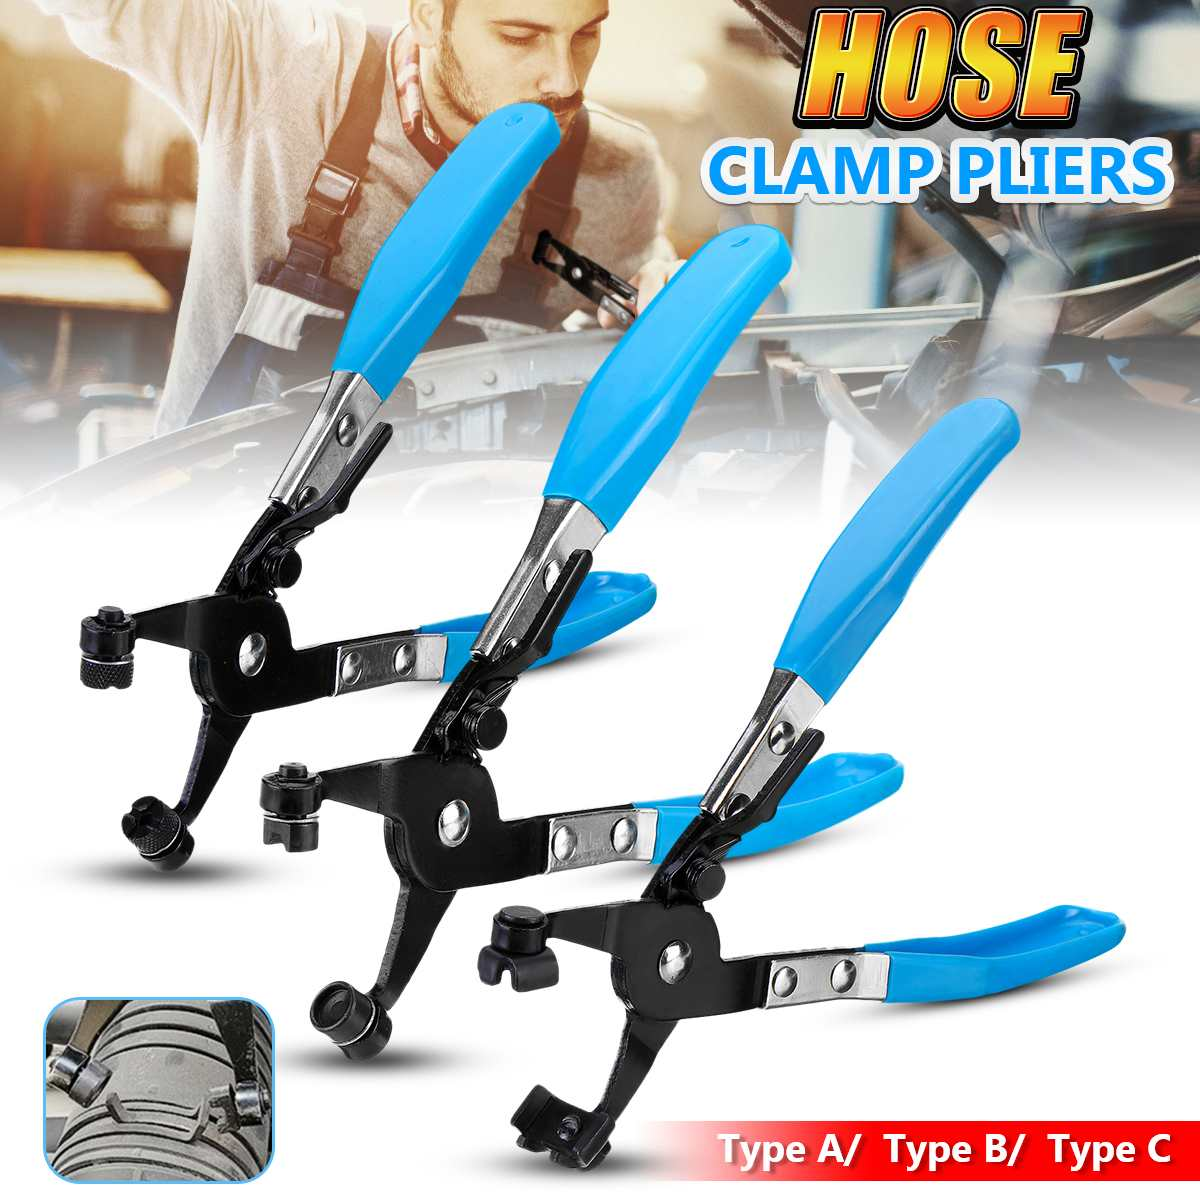 3 Type Flat-Band Ring Spring Type Swivel Hose Clamp Pliers Tool Car Auto Water Pipe Removal Swivel Jaws